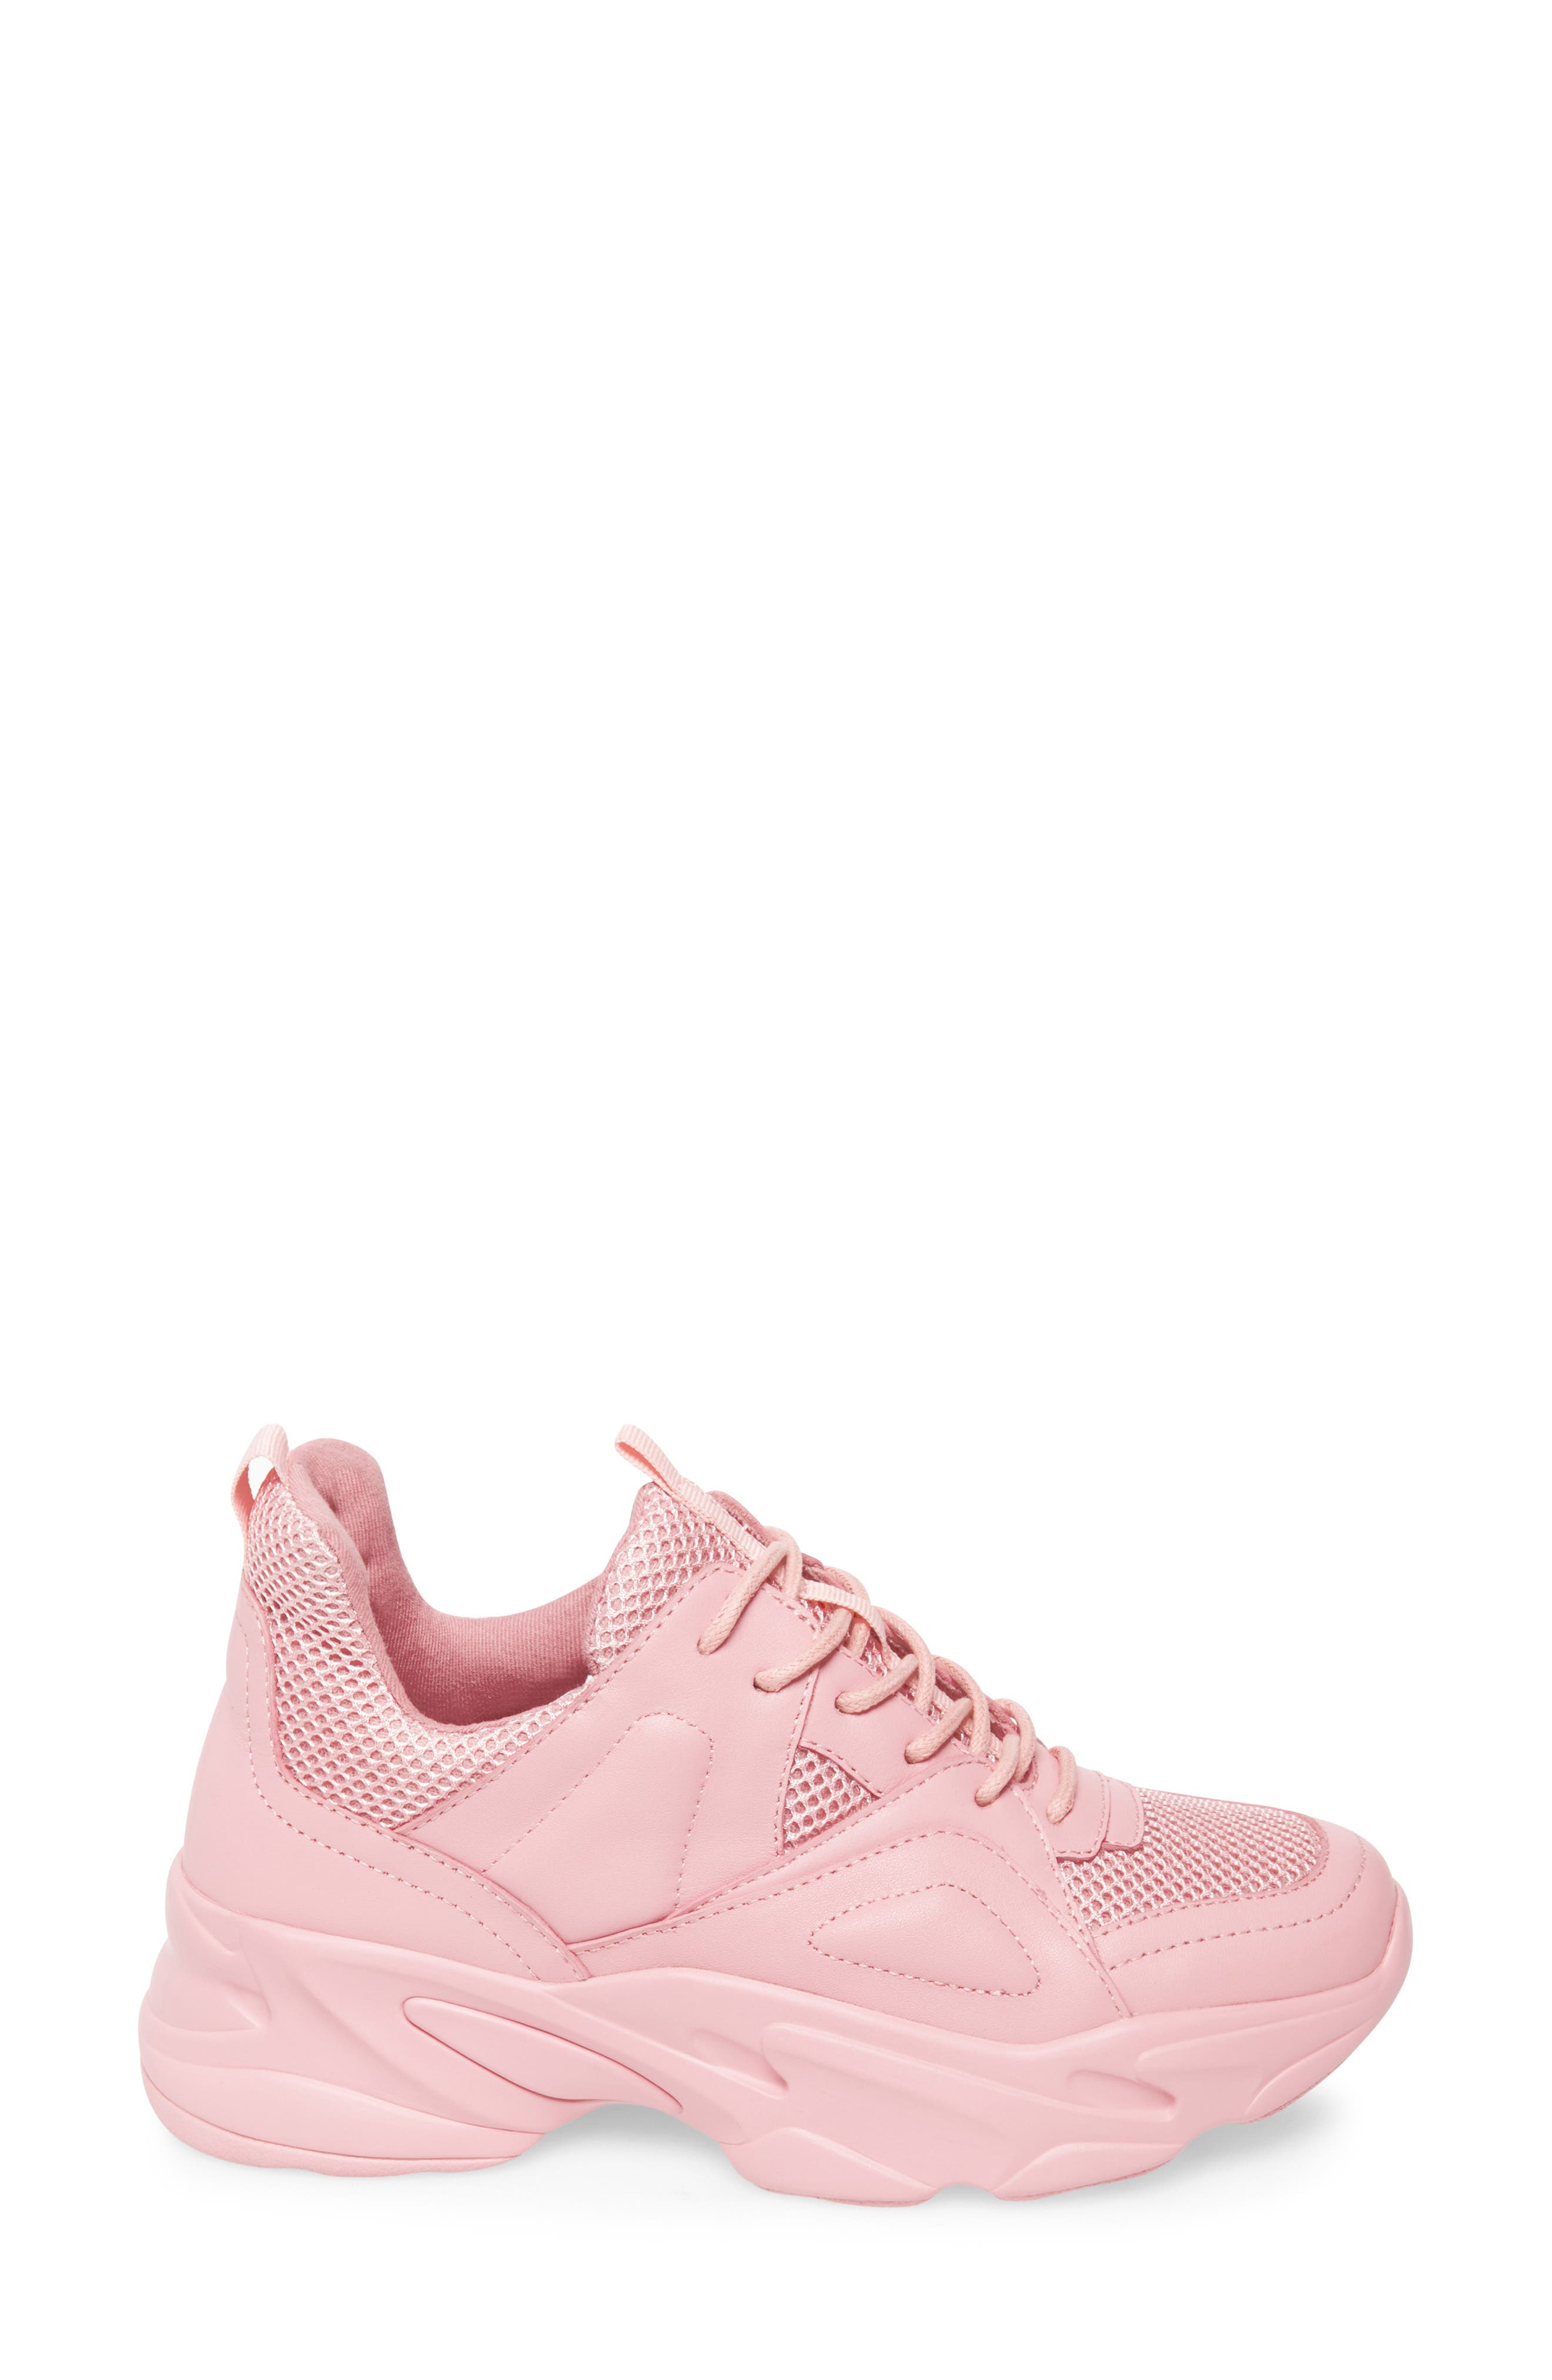 Movement Sneaker,                             Alternate thumbnail 3, color,                             PINK LEATHER